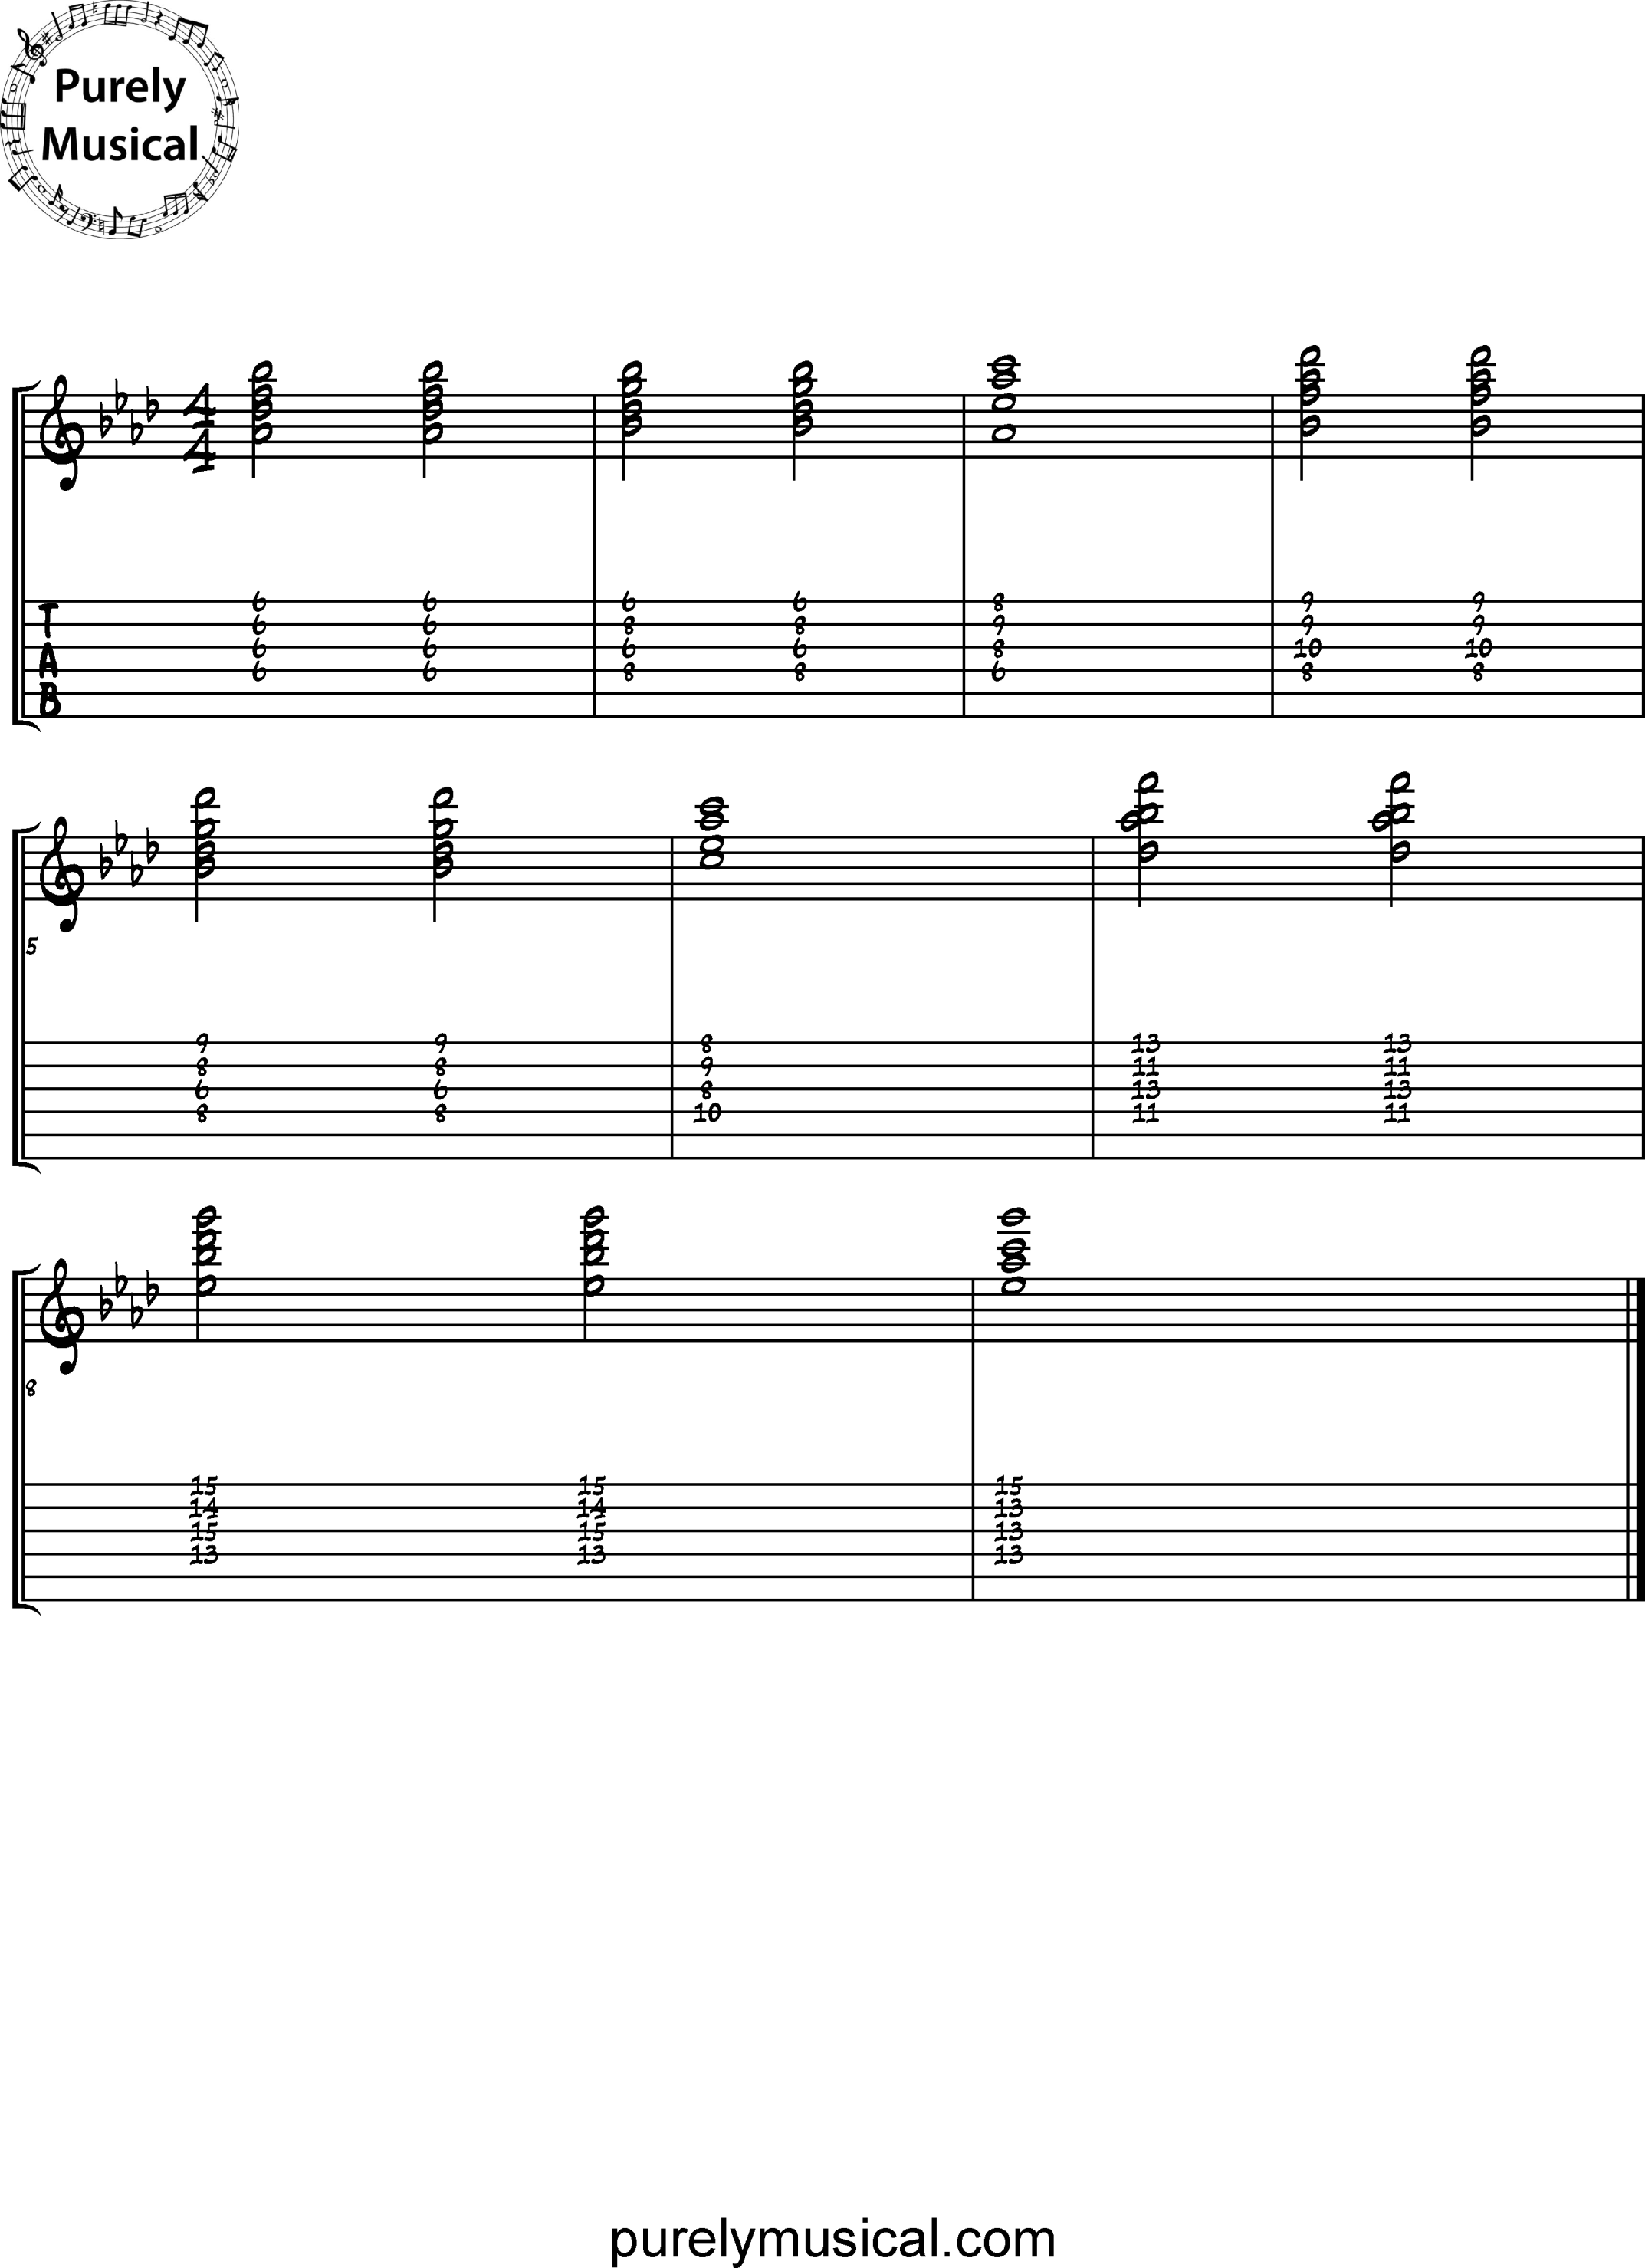 Intermediate  Chord Sequence Ab Major Ii-Vi-I